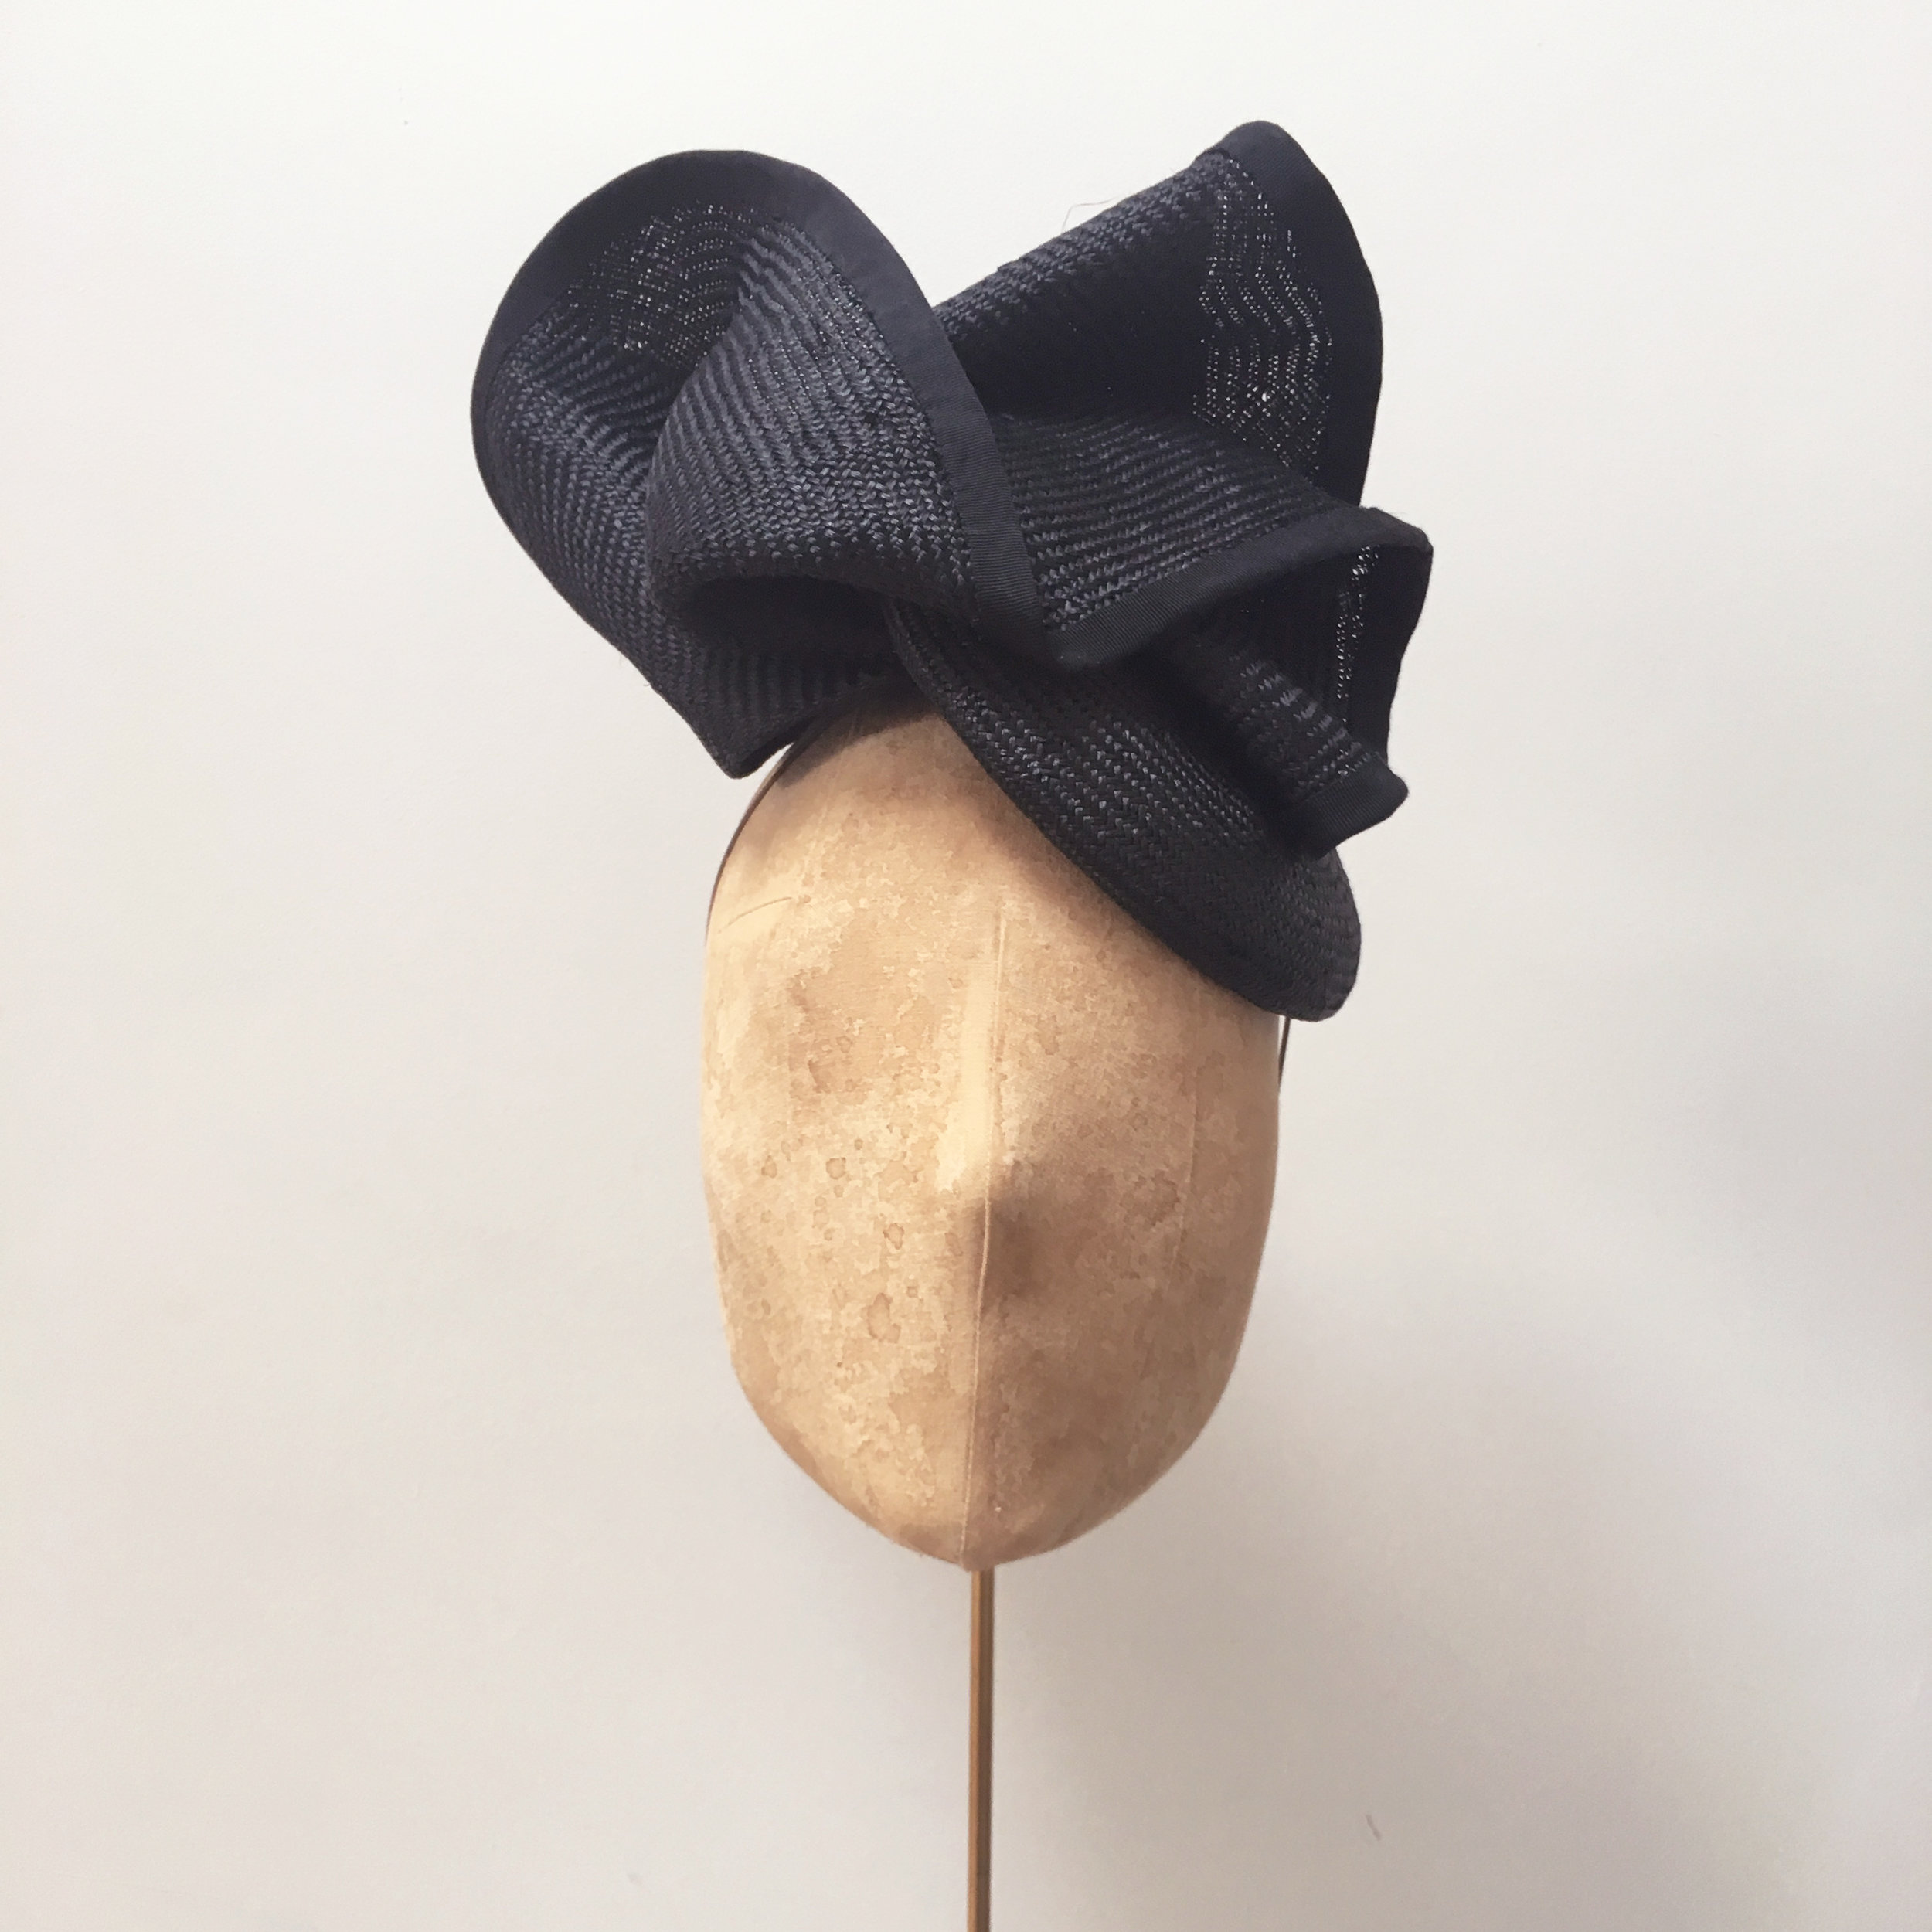 HELIX - £70  Black sisal straw button headpiece with matching structural folds.